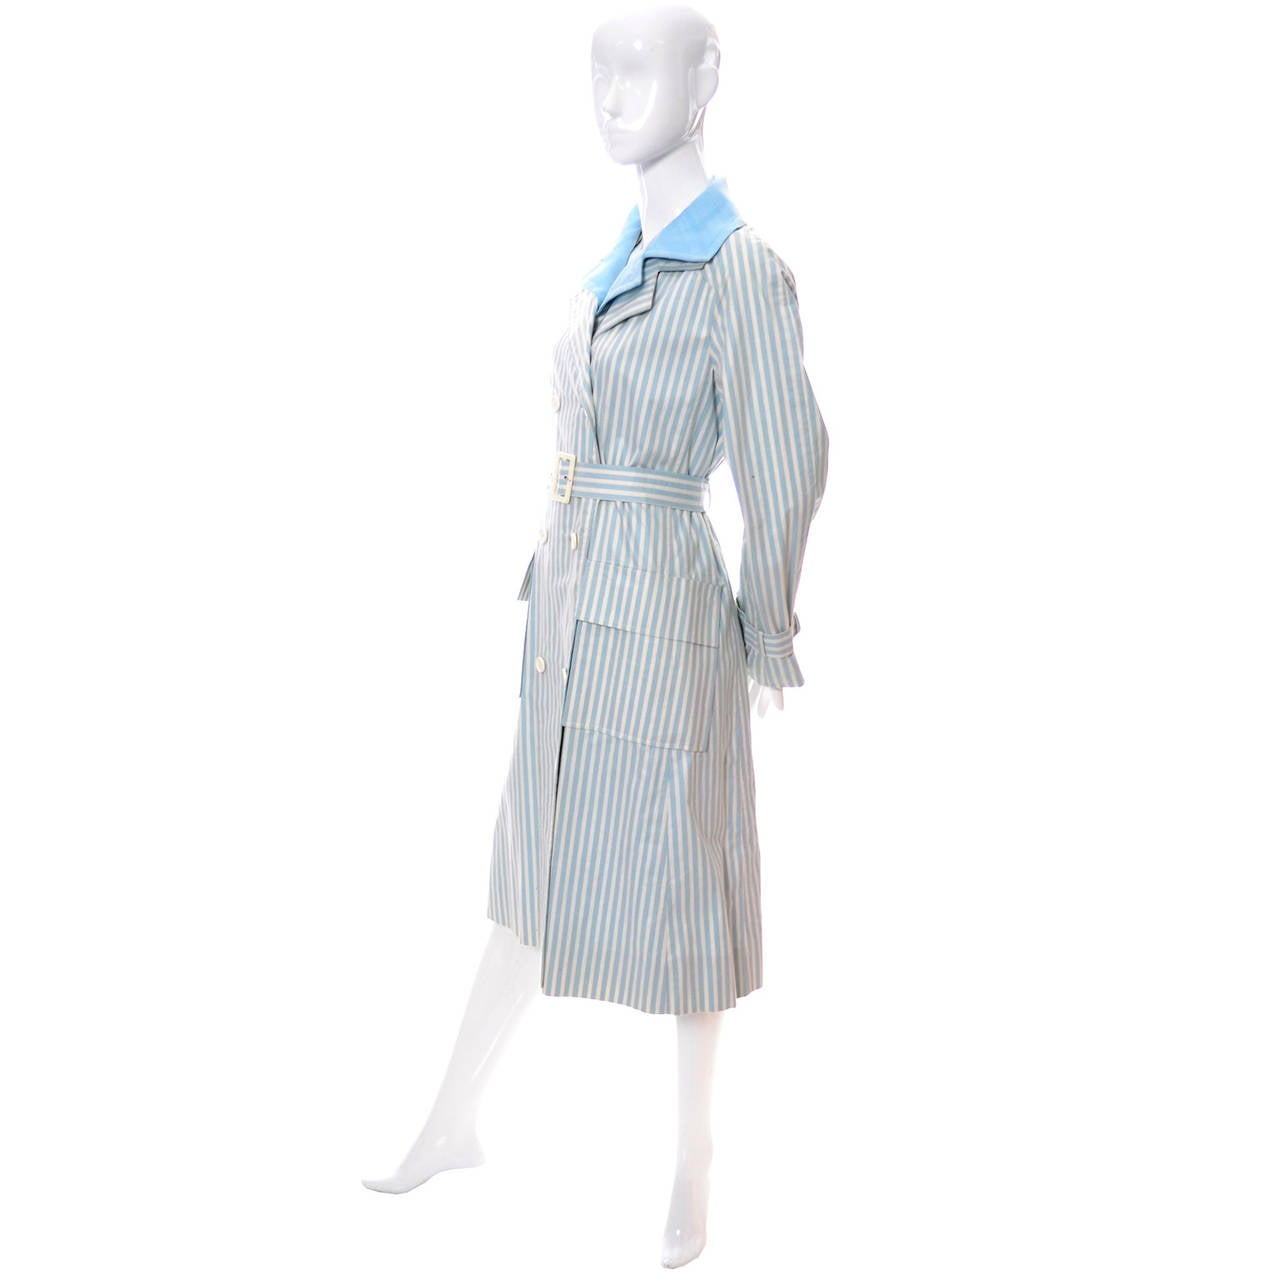 Givenchy Nouvelle Boutique 1970s Blue Vintage Dress and Striped Coat Outfit 8